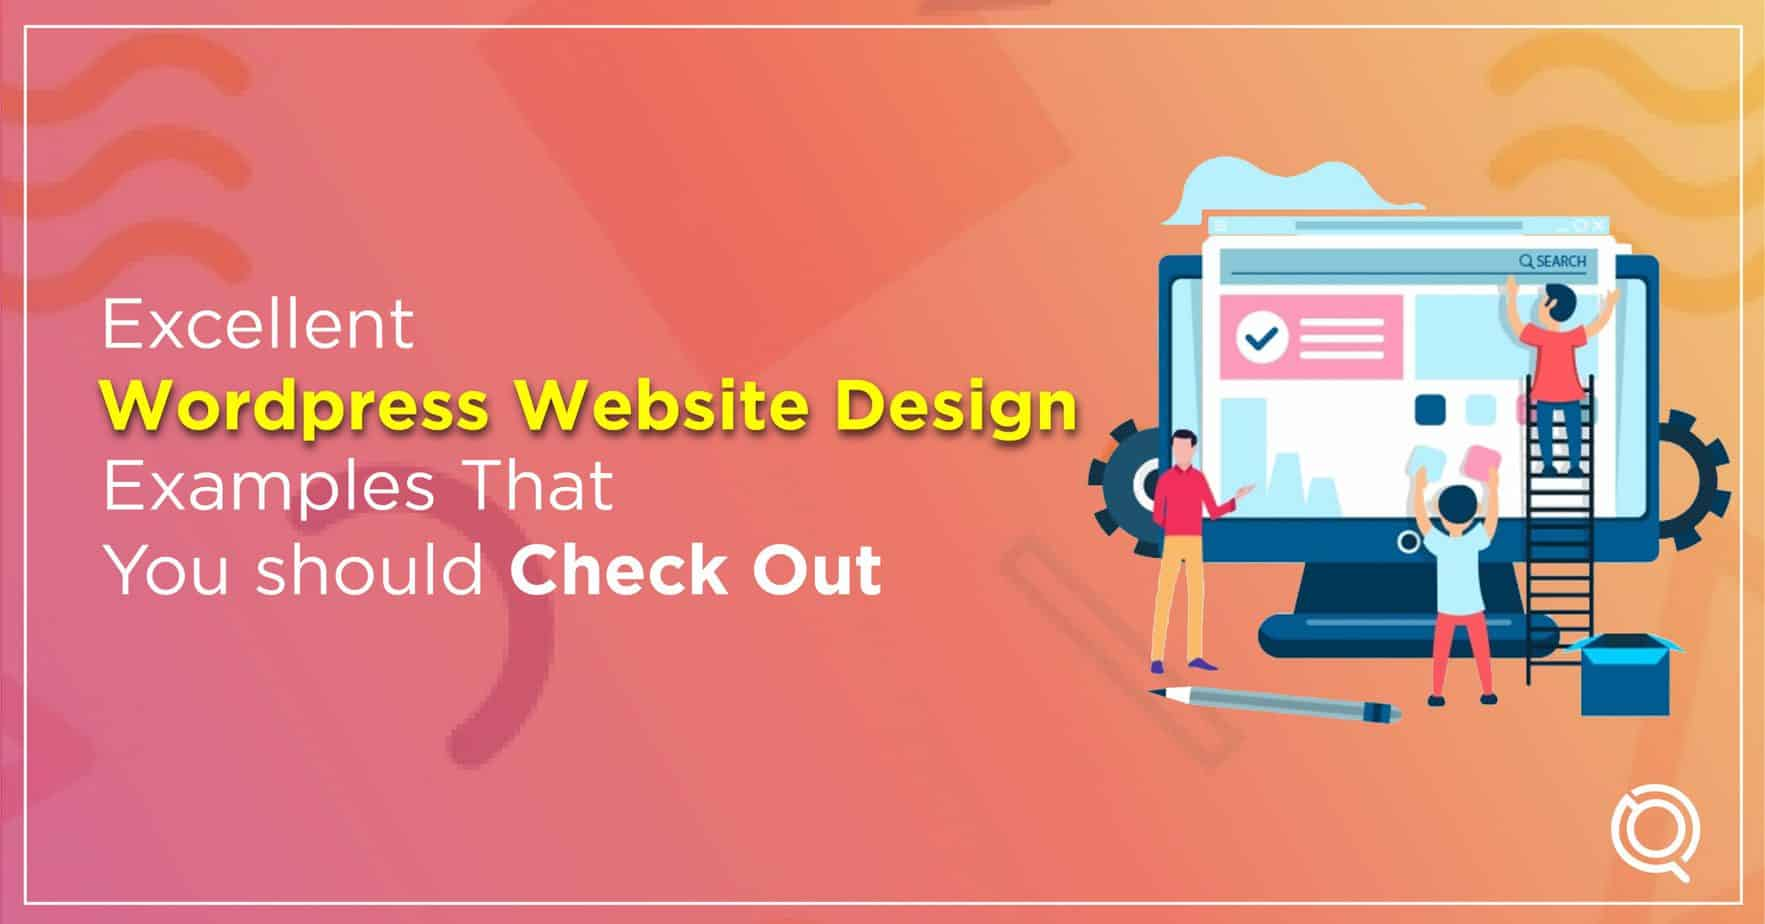 Excellent WordPress Website Design Examples That You Should Check - One Search Pro Digital Marketing Agency